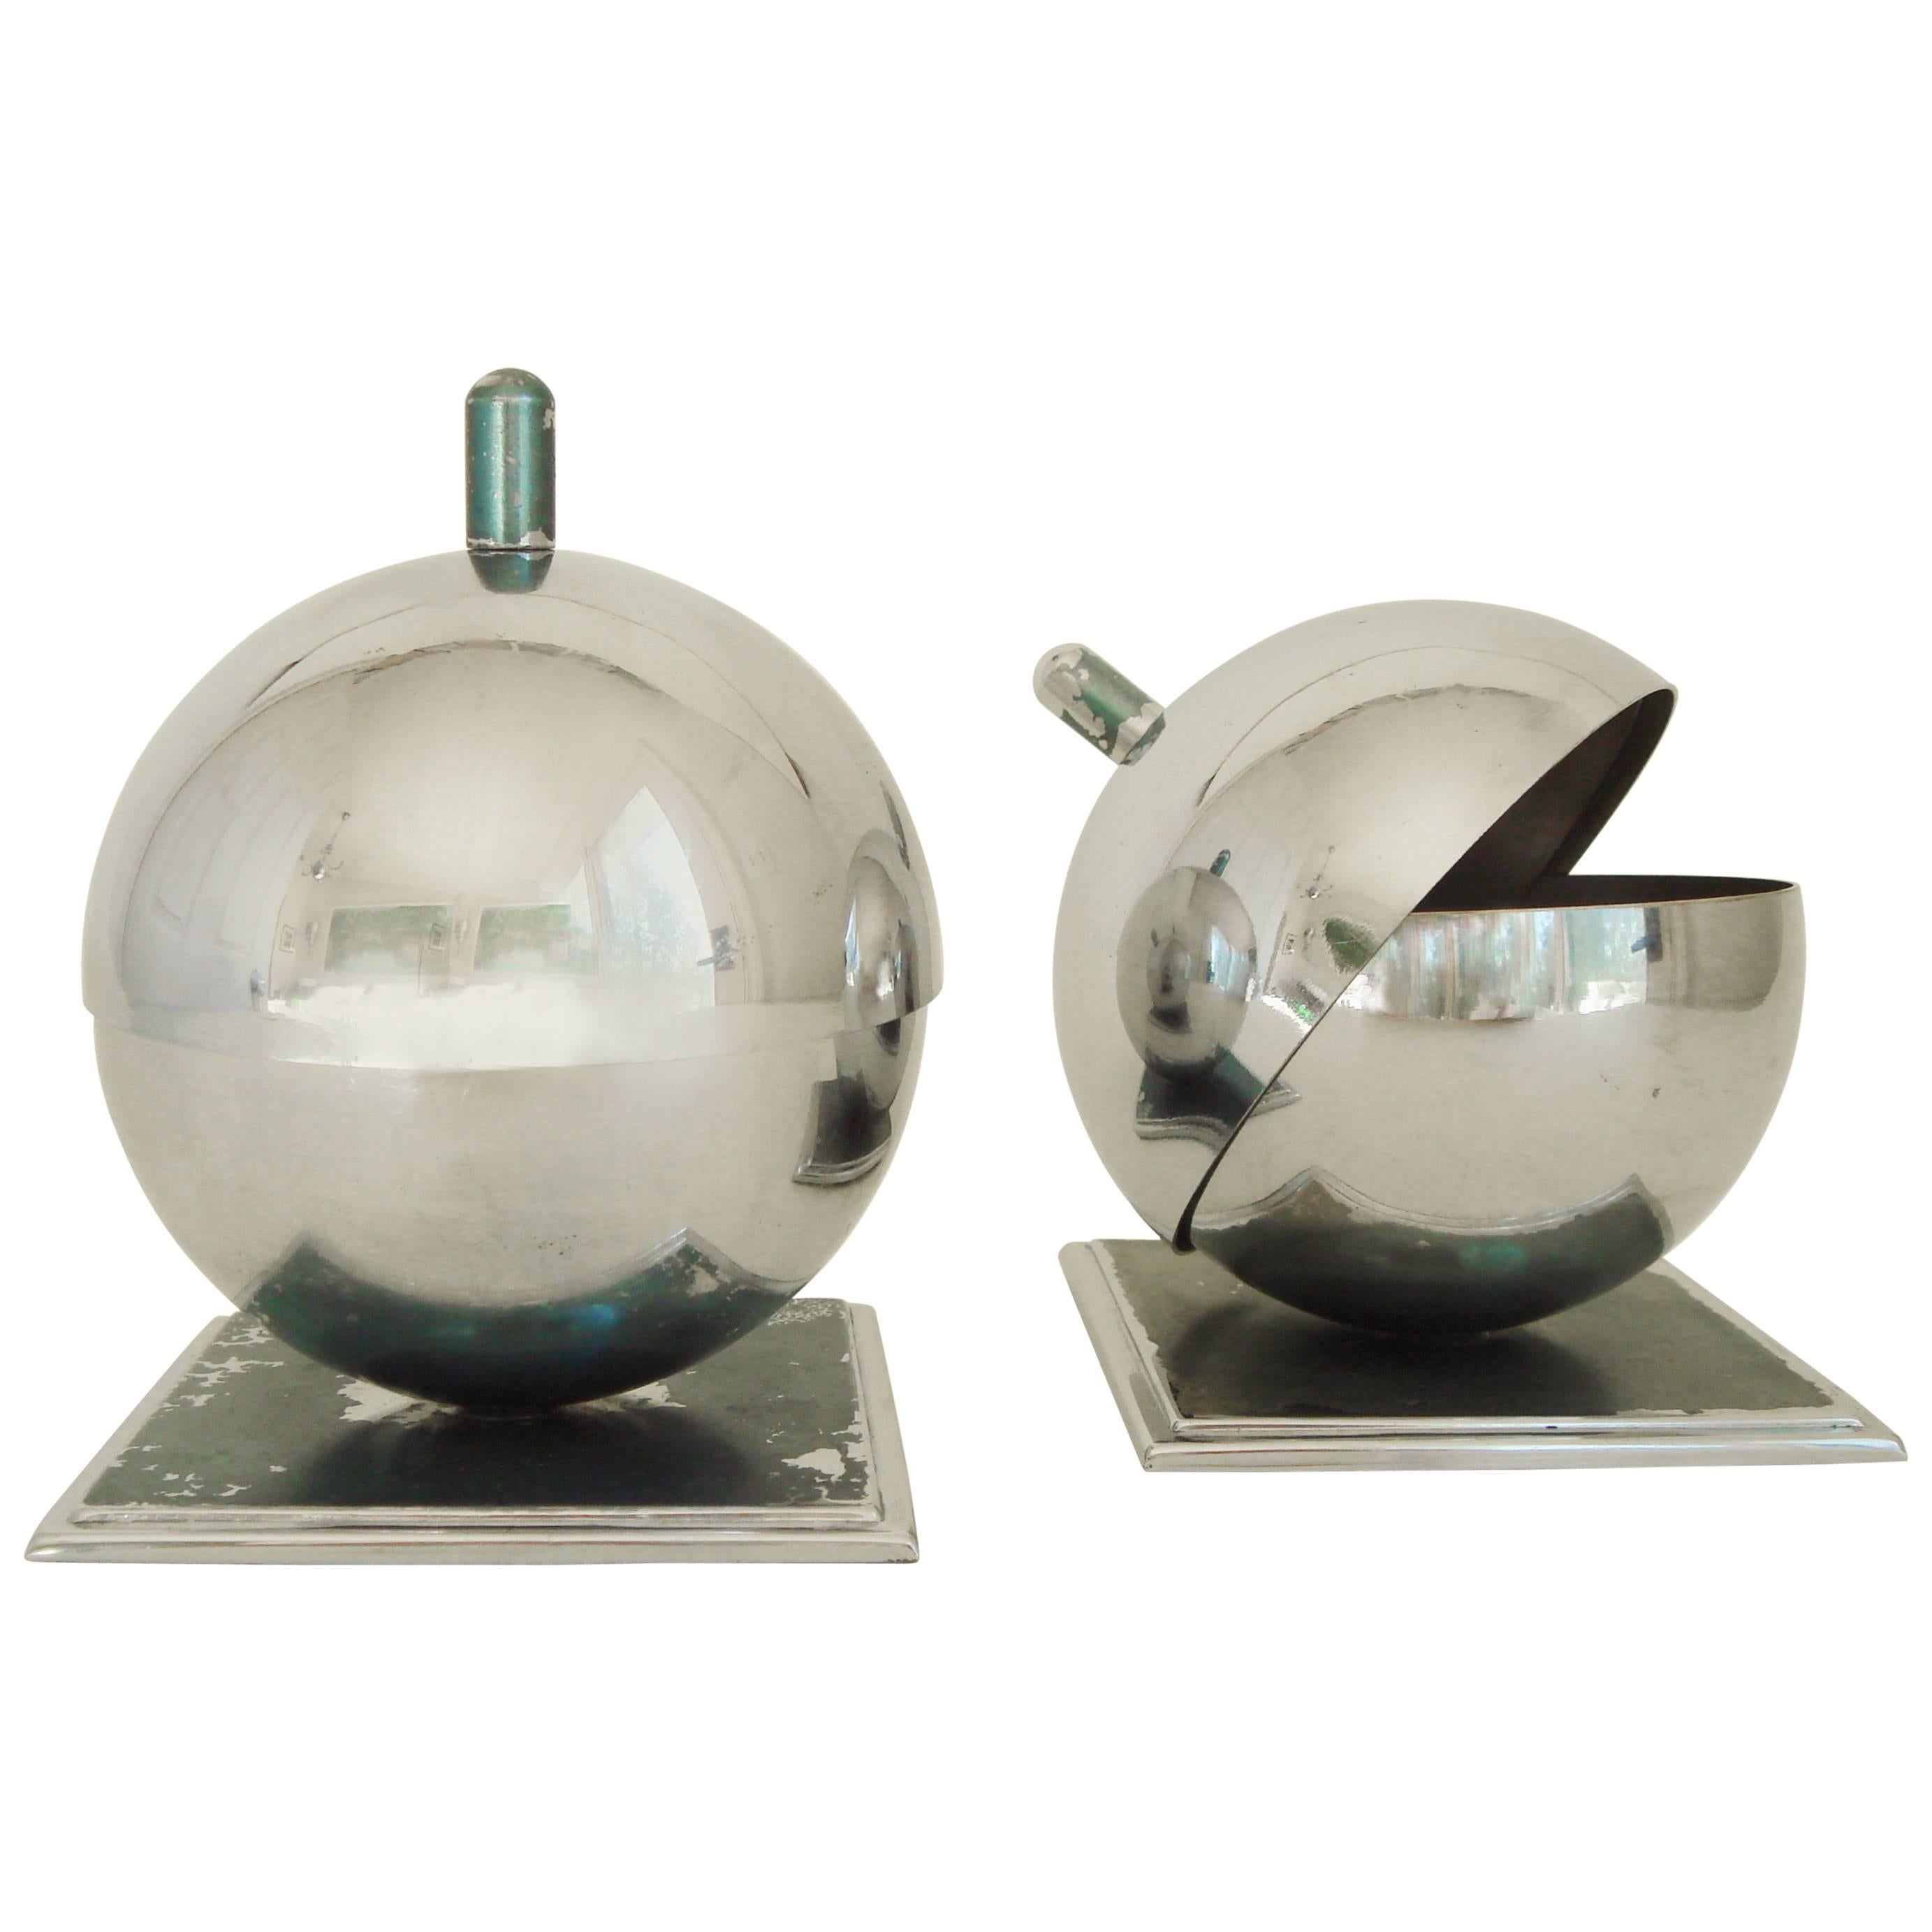 Objet Deco Chrome Pair Of American Art Deco Chrome Globe Ashtrays By Walter Von Nessen For Chase